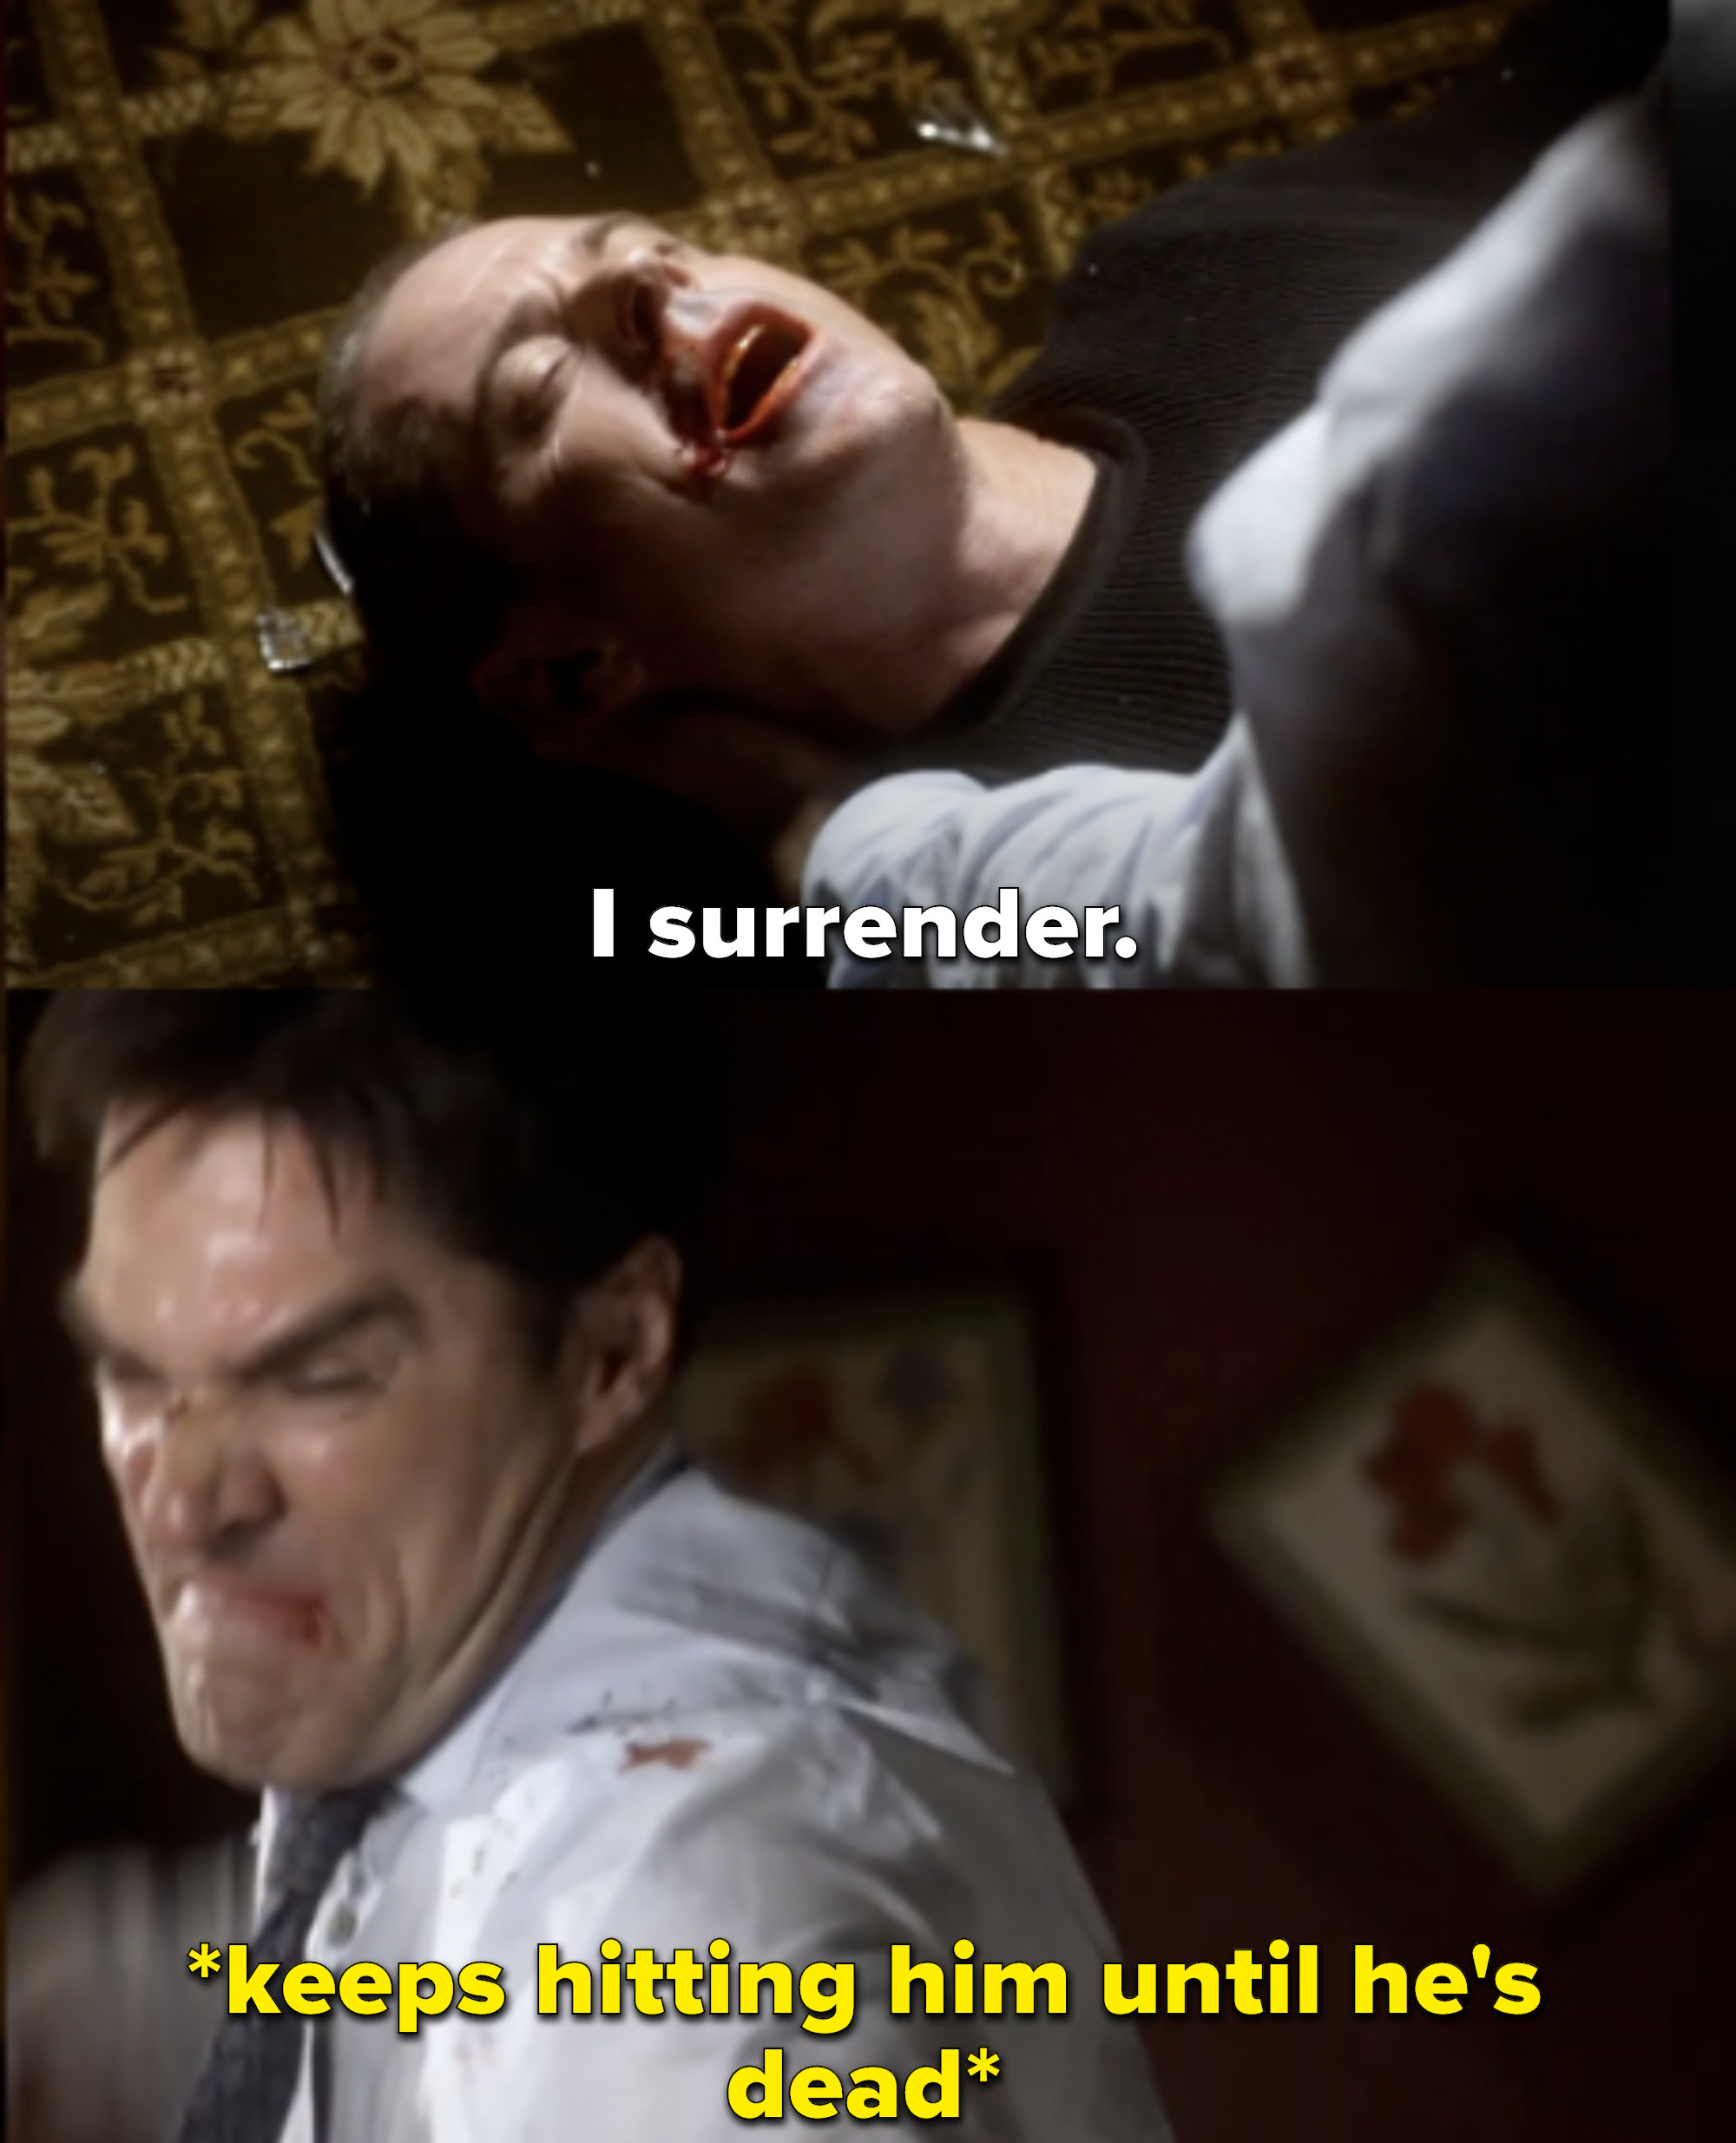 The Reaper says he surrenders, but Hotch keeps punching him until he's dead